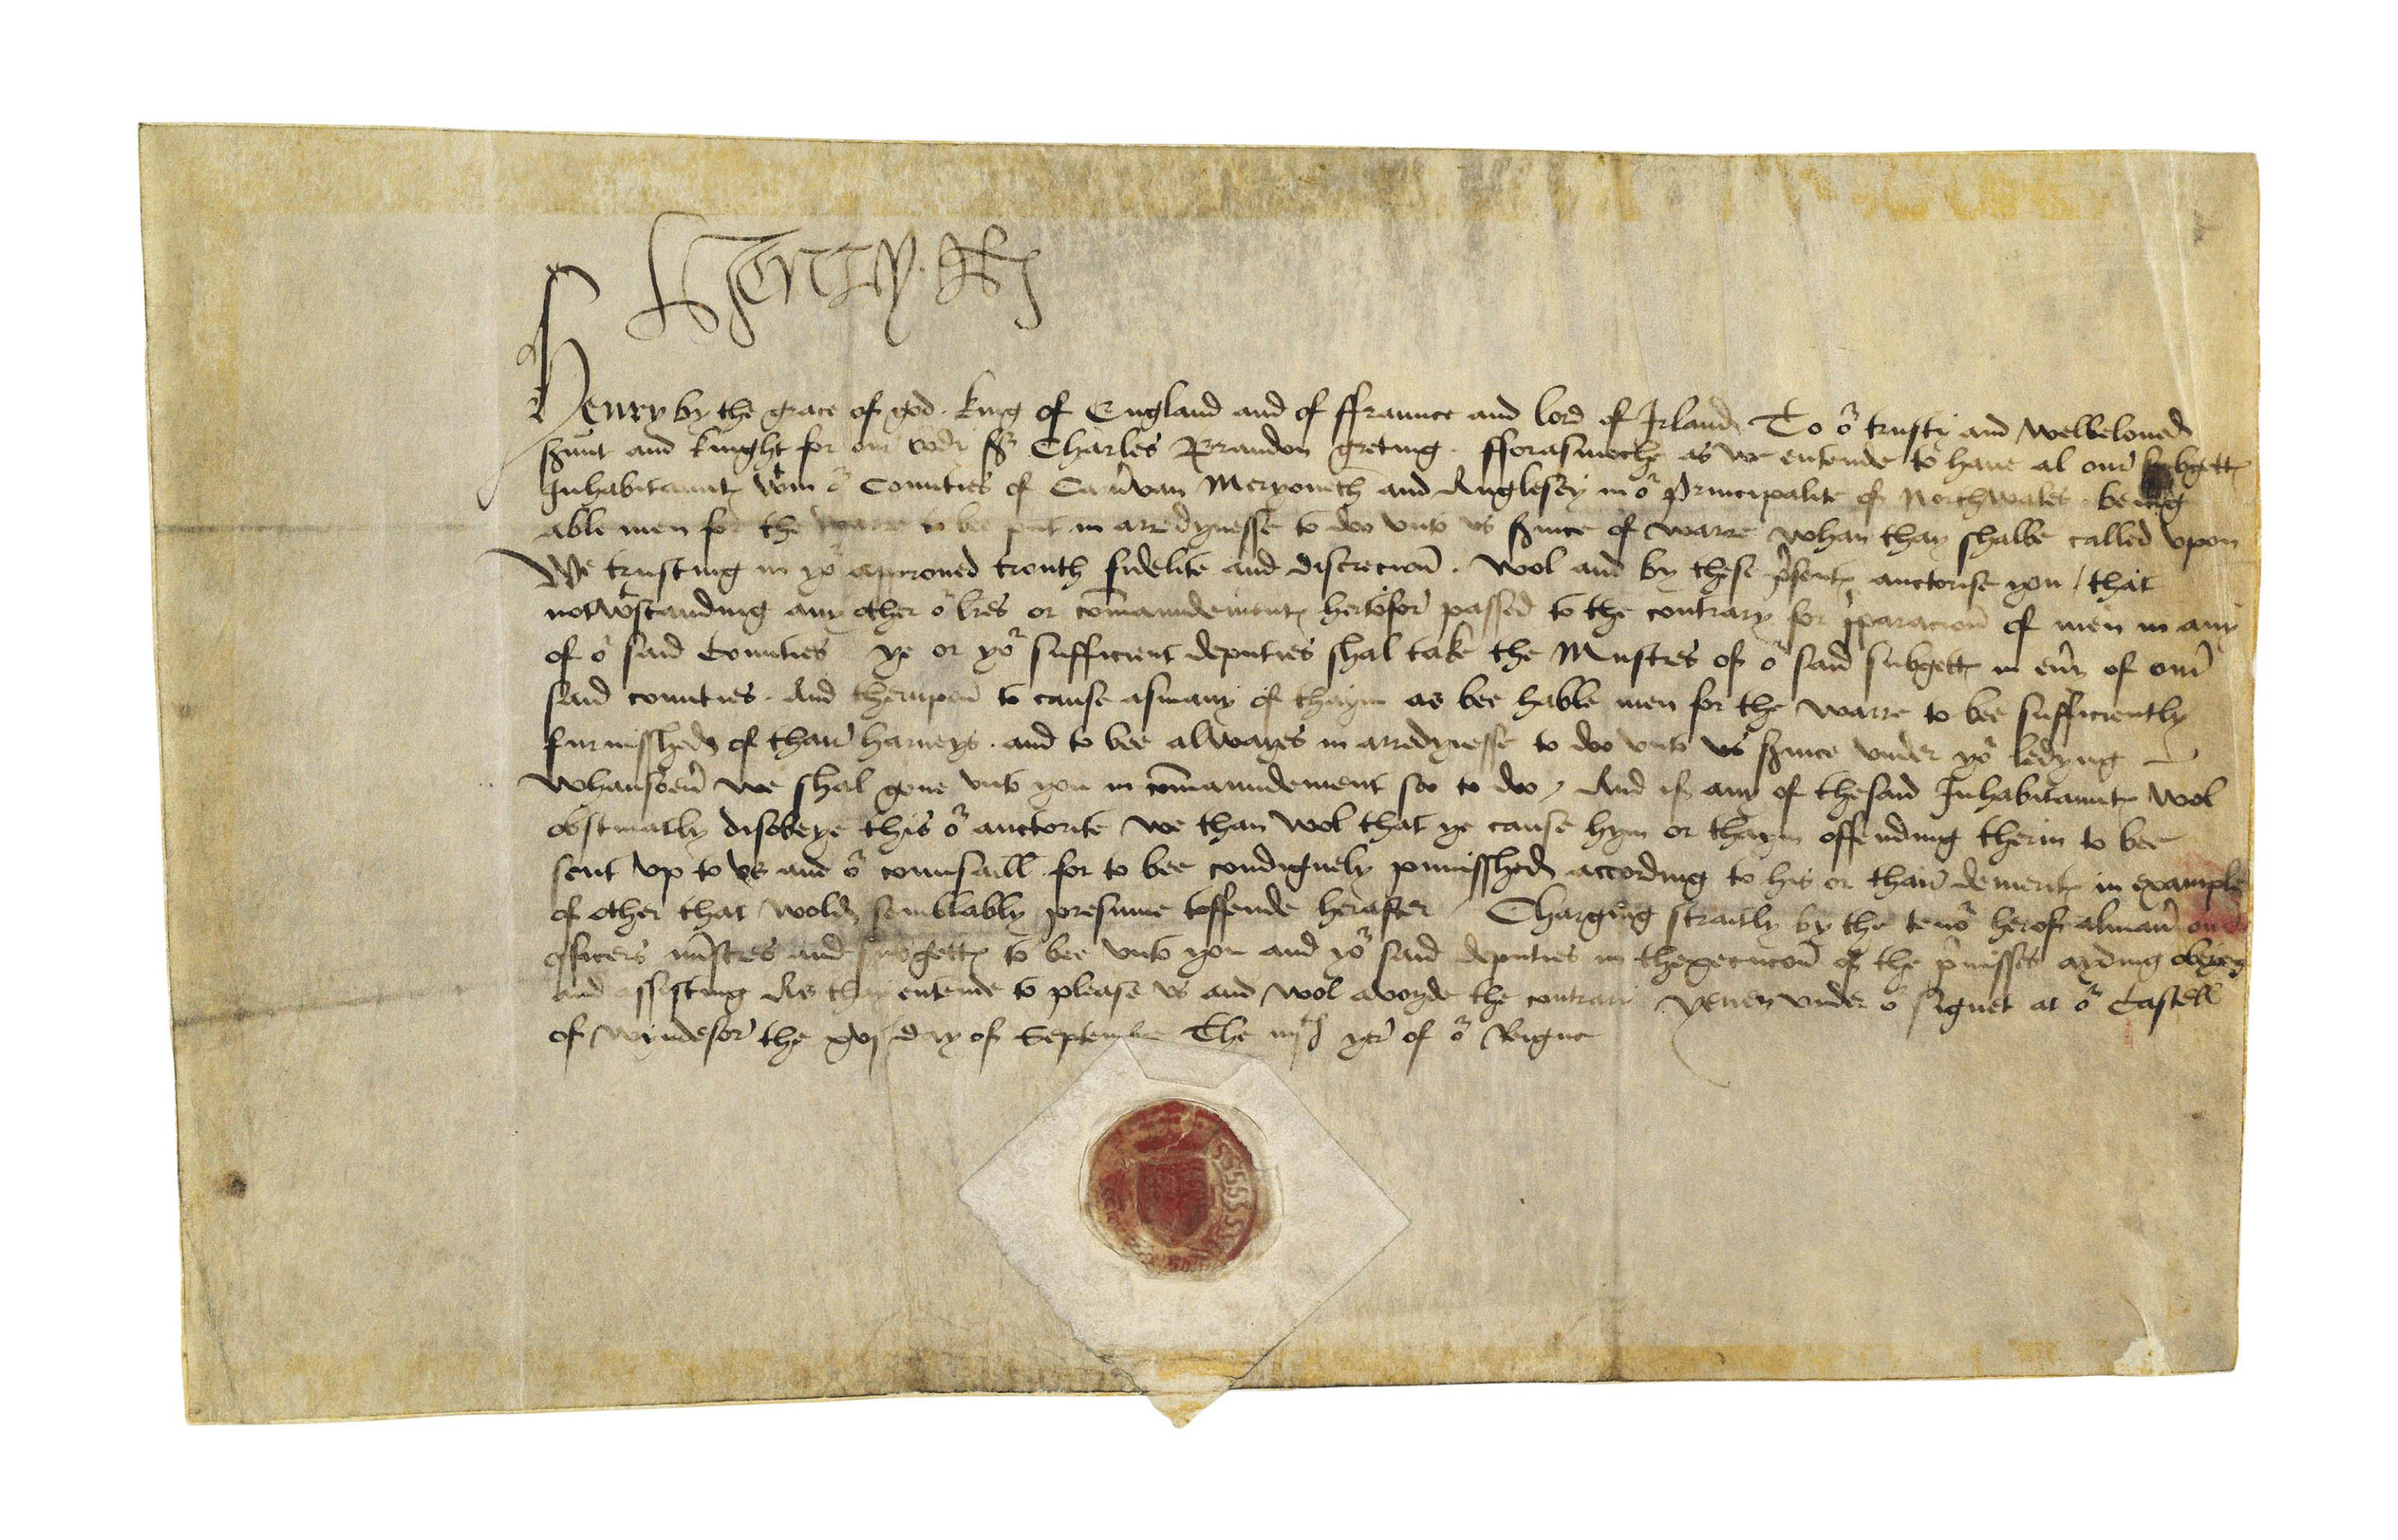 HENRY VIII (1491-1547), king of England and Ireland. Document signed ('Henry R'), Windsor, 16 September 1512, letters patent to Sir Charles Brandon, ordering him to take the musters in the counties of Carnarvon, Merioneth and Anglesey and to 'cause asmany of thaym as bee hable men for the warre to bee sufficiently furnisshed of thaire harneys and to bee always in arredynesse to doo unto us s[e]rvice under yo[u]r ledyng', any who refuse to be sent before the king and his council 'to be condignely punisshed according to his or thaire demerits in example of other that wolde semblably presume toffende herafter', in English, on vellum, 16 lines on one membrane, 168 x 290mm (laid onto archival support, causing some curling), papered signet seal.